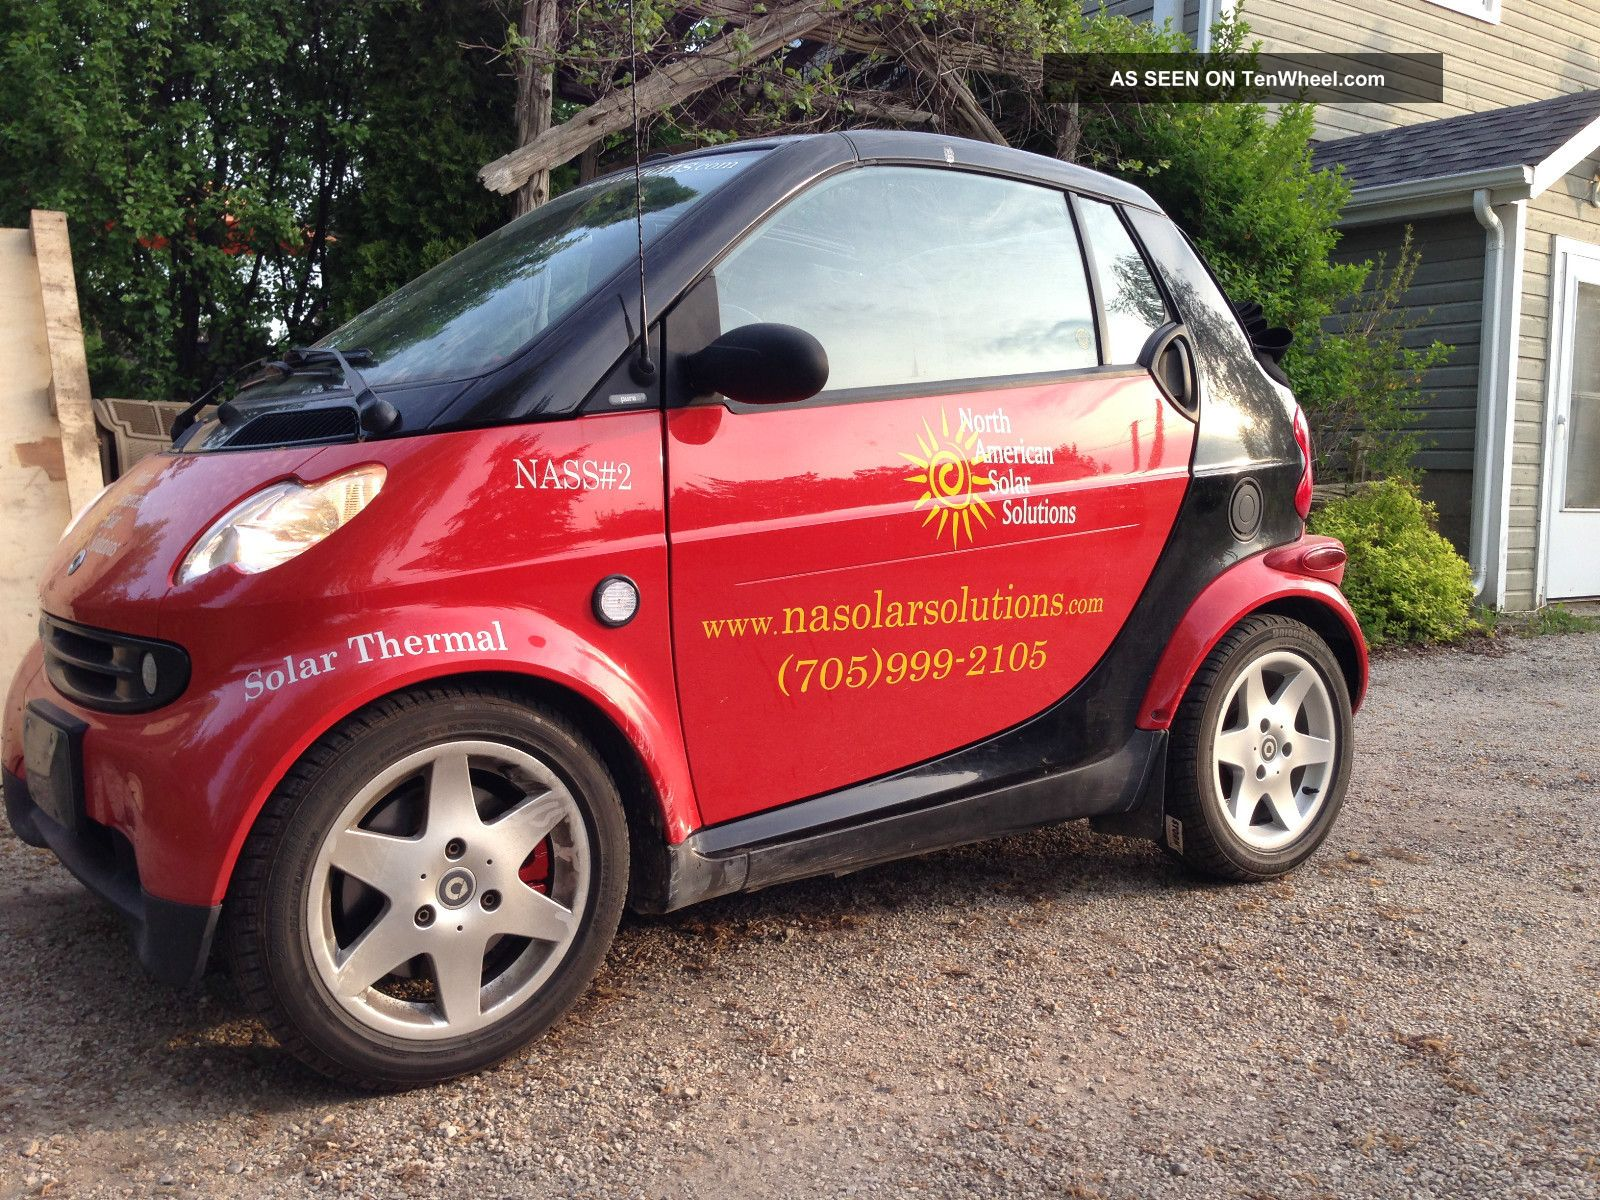 2005 smart fortwo 450 brabus suspension tuned diesel 70 mpg. Black Bedroom Furniture Sets. Home Design Ideas